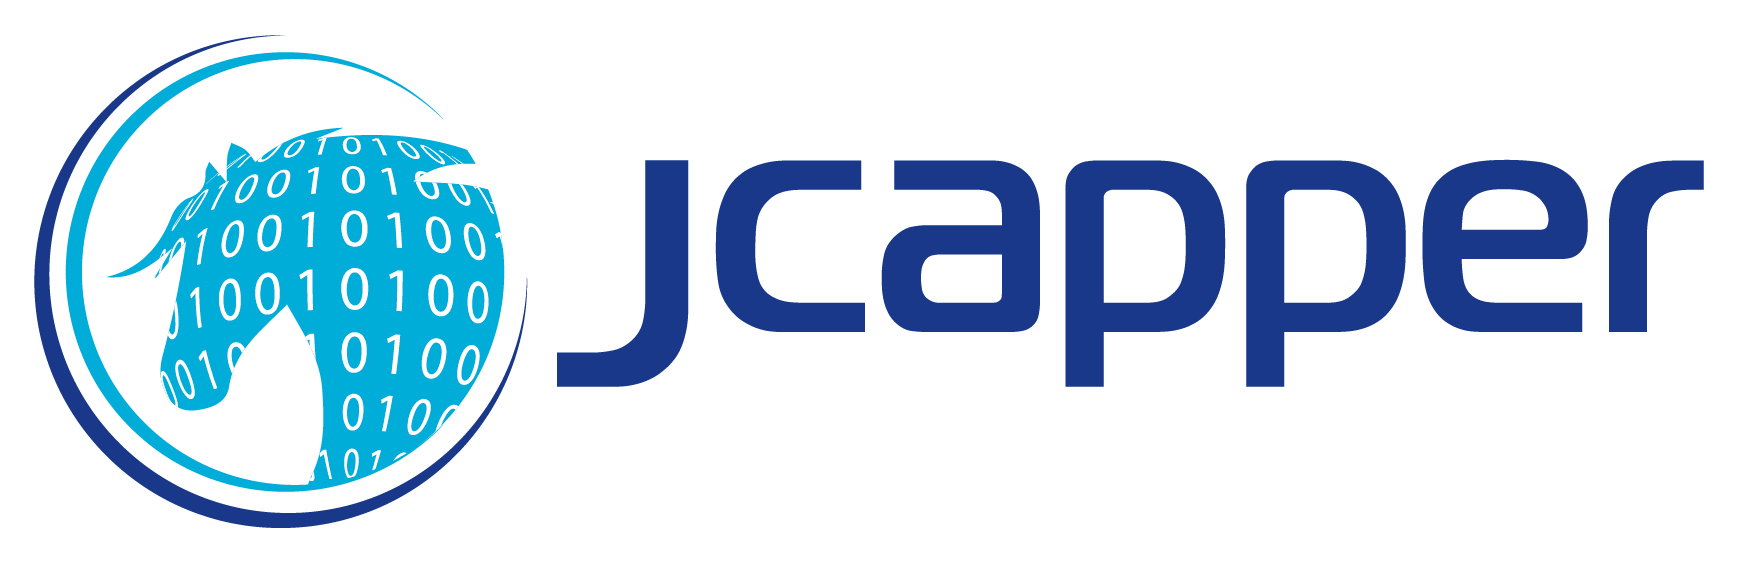 Database Handicapping Software- JCapper